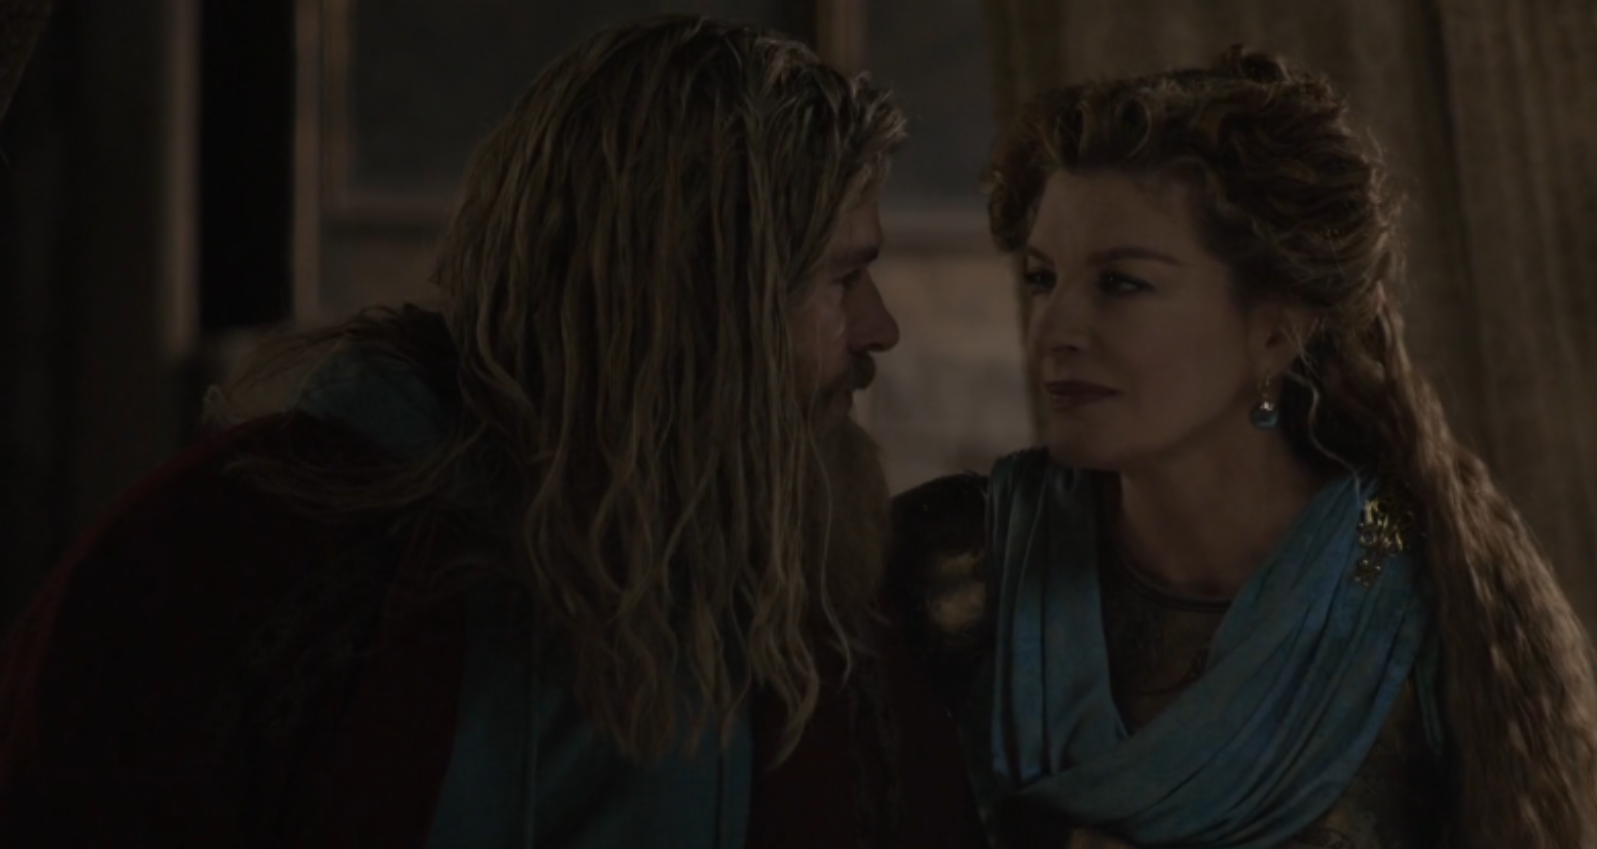 thor-and-his-mother-in-avengers-endgame.jpg